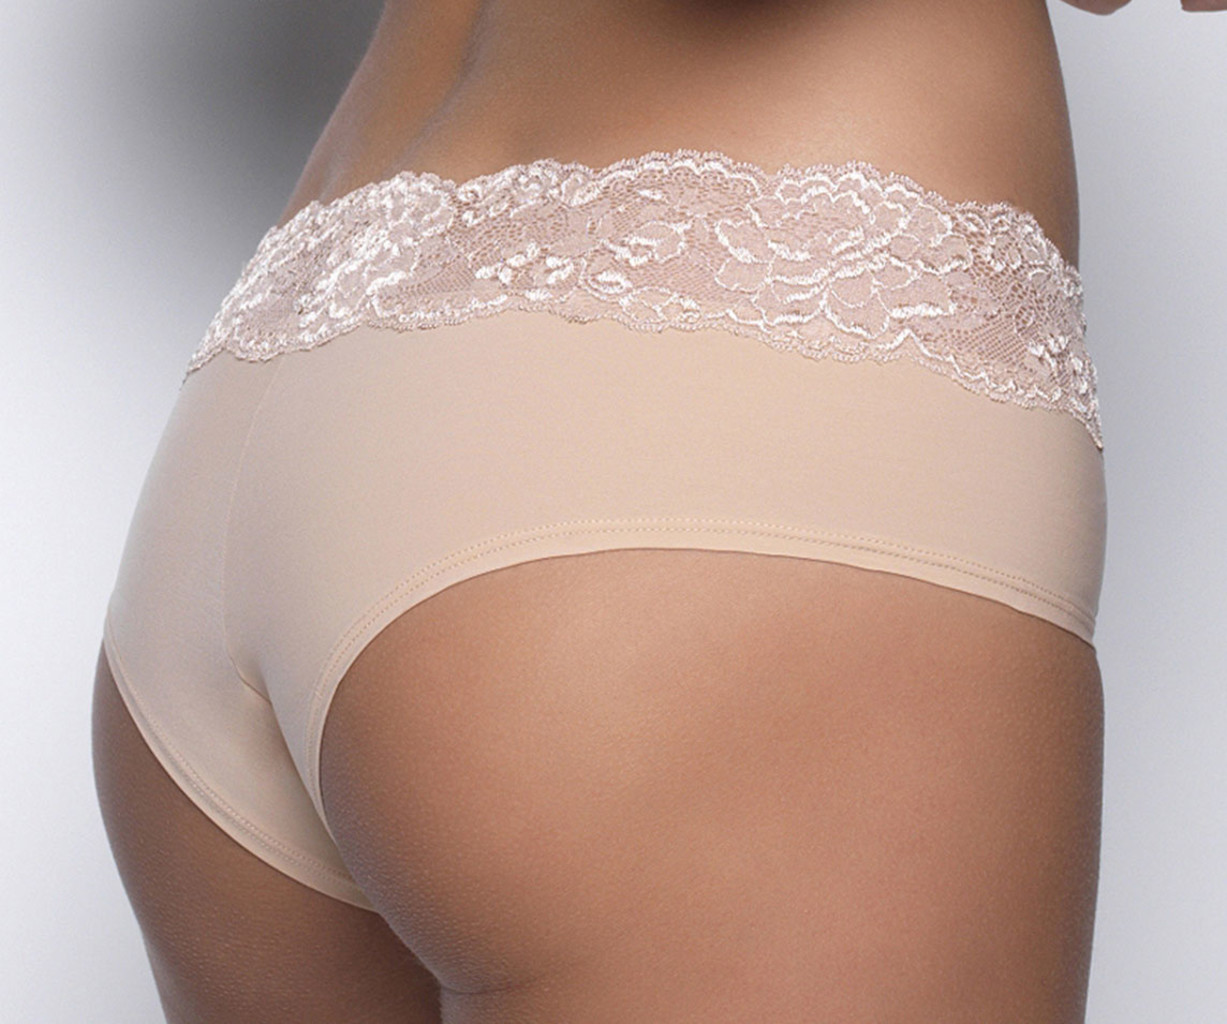 After Eden After Eden Sensitive Lace heupboxer kleur wit, zwart, poudre en pink